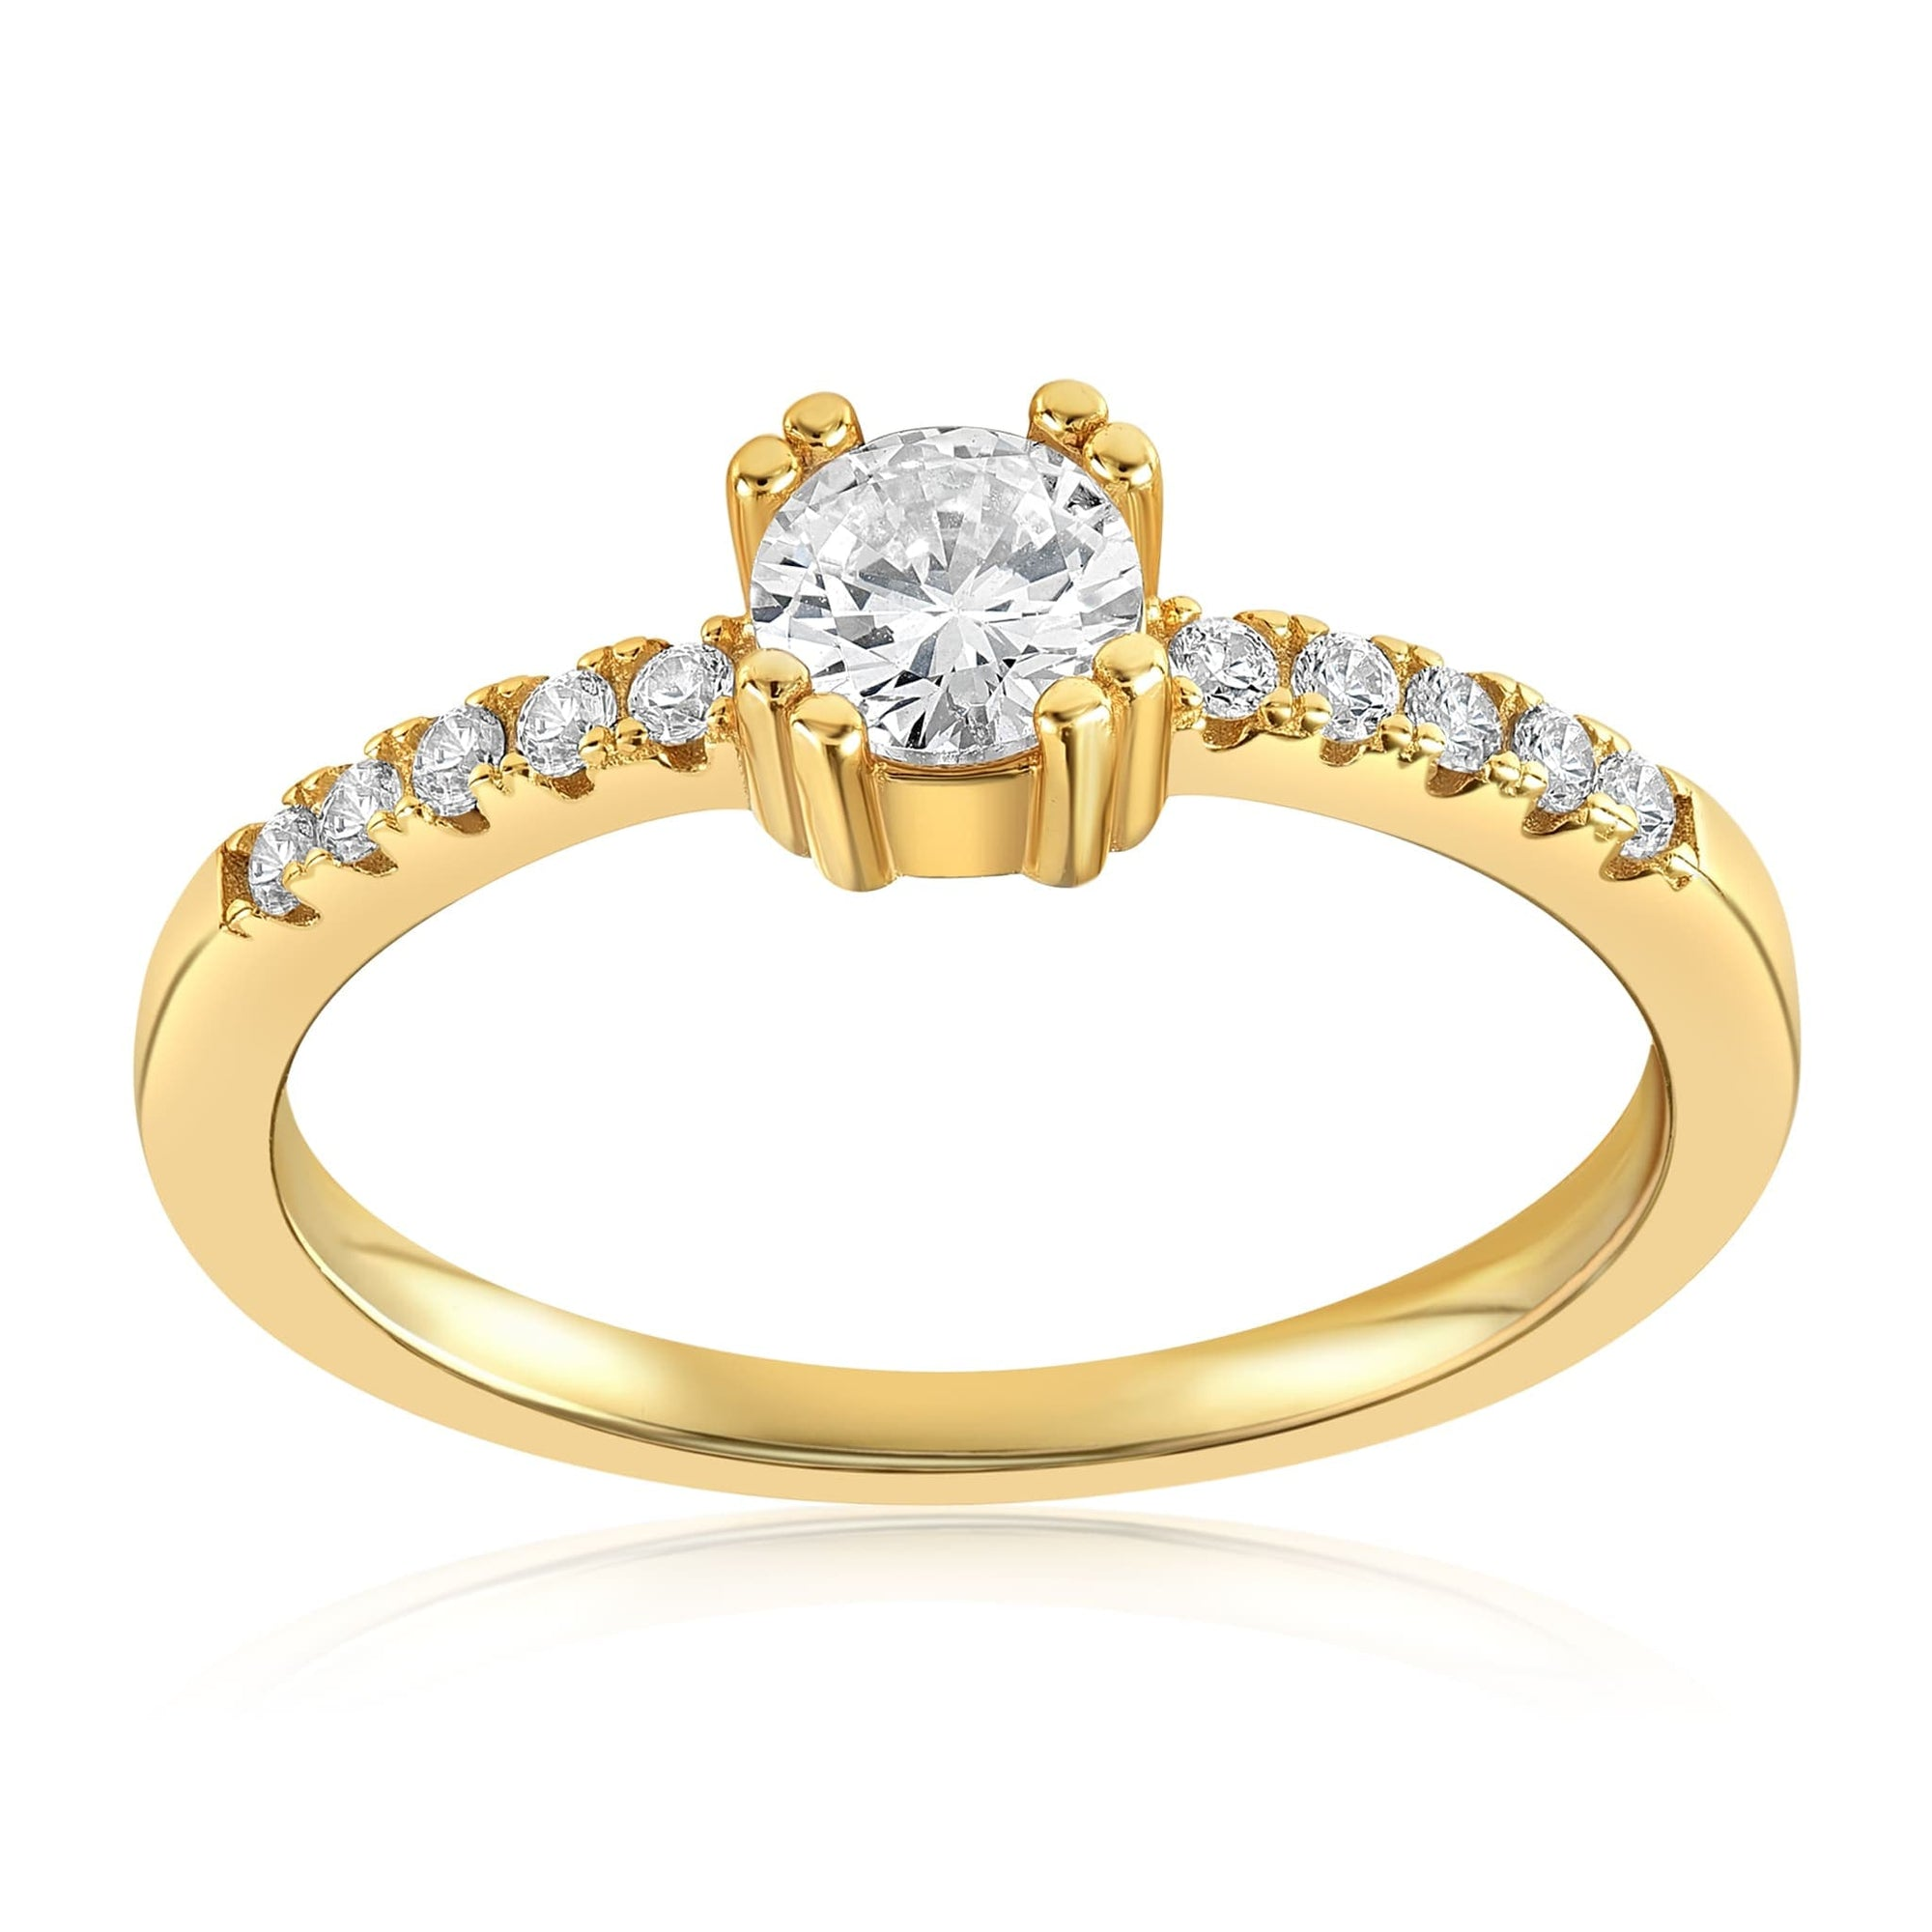 Tianna Sparkle Ring - Front View Facing Up - 18K Yellow Gold Vermeil Featured